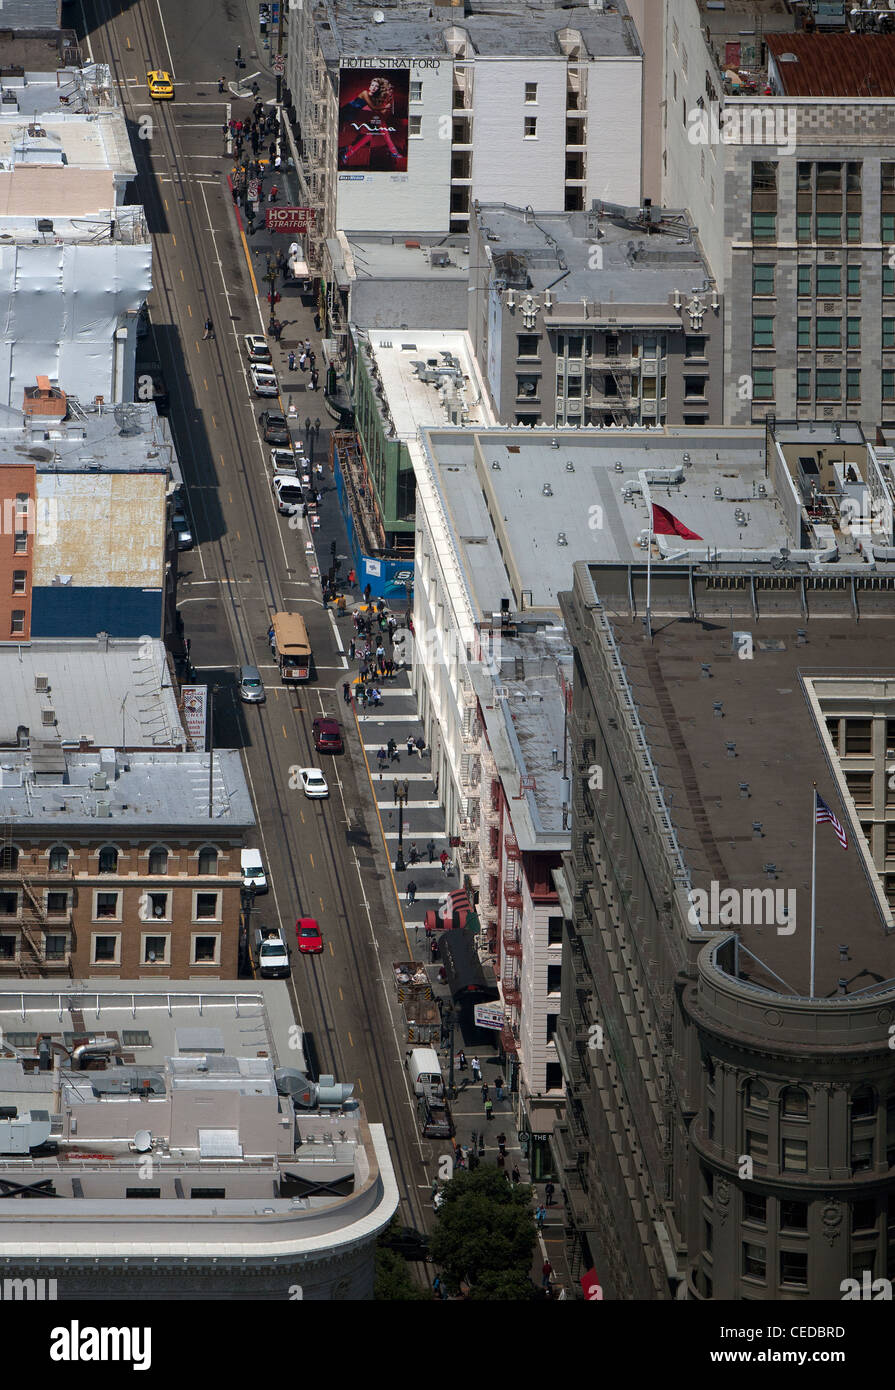 Aerial photograph powell street cable car line union for Western union san francisco ca